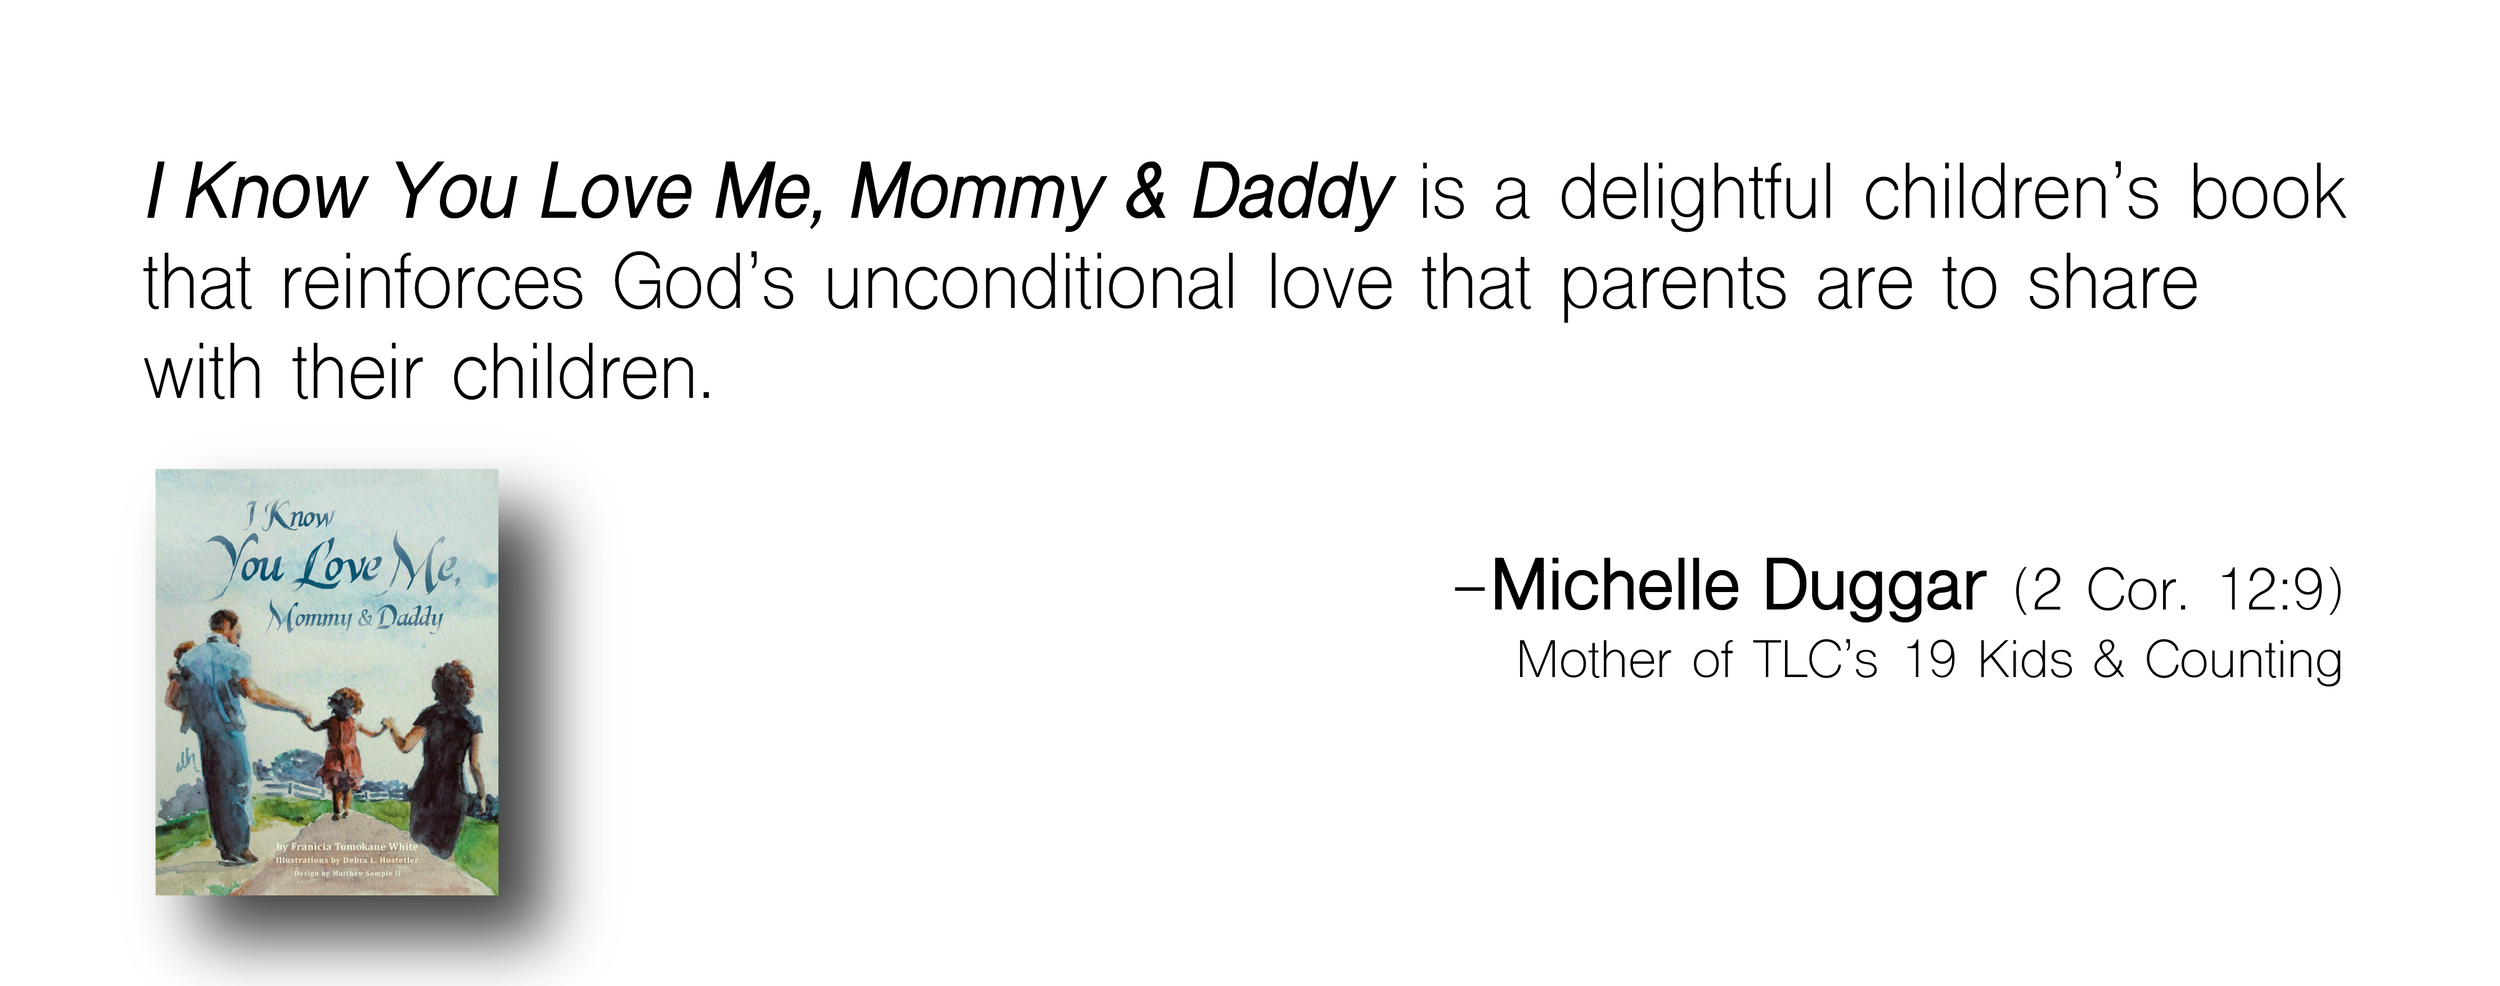 Michelle Duggar Christian children's book endorsement for I Know You Love Me Mommy and Daddy by Franicia Tomokane White of Wholesome Press publishing